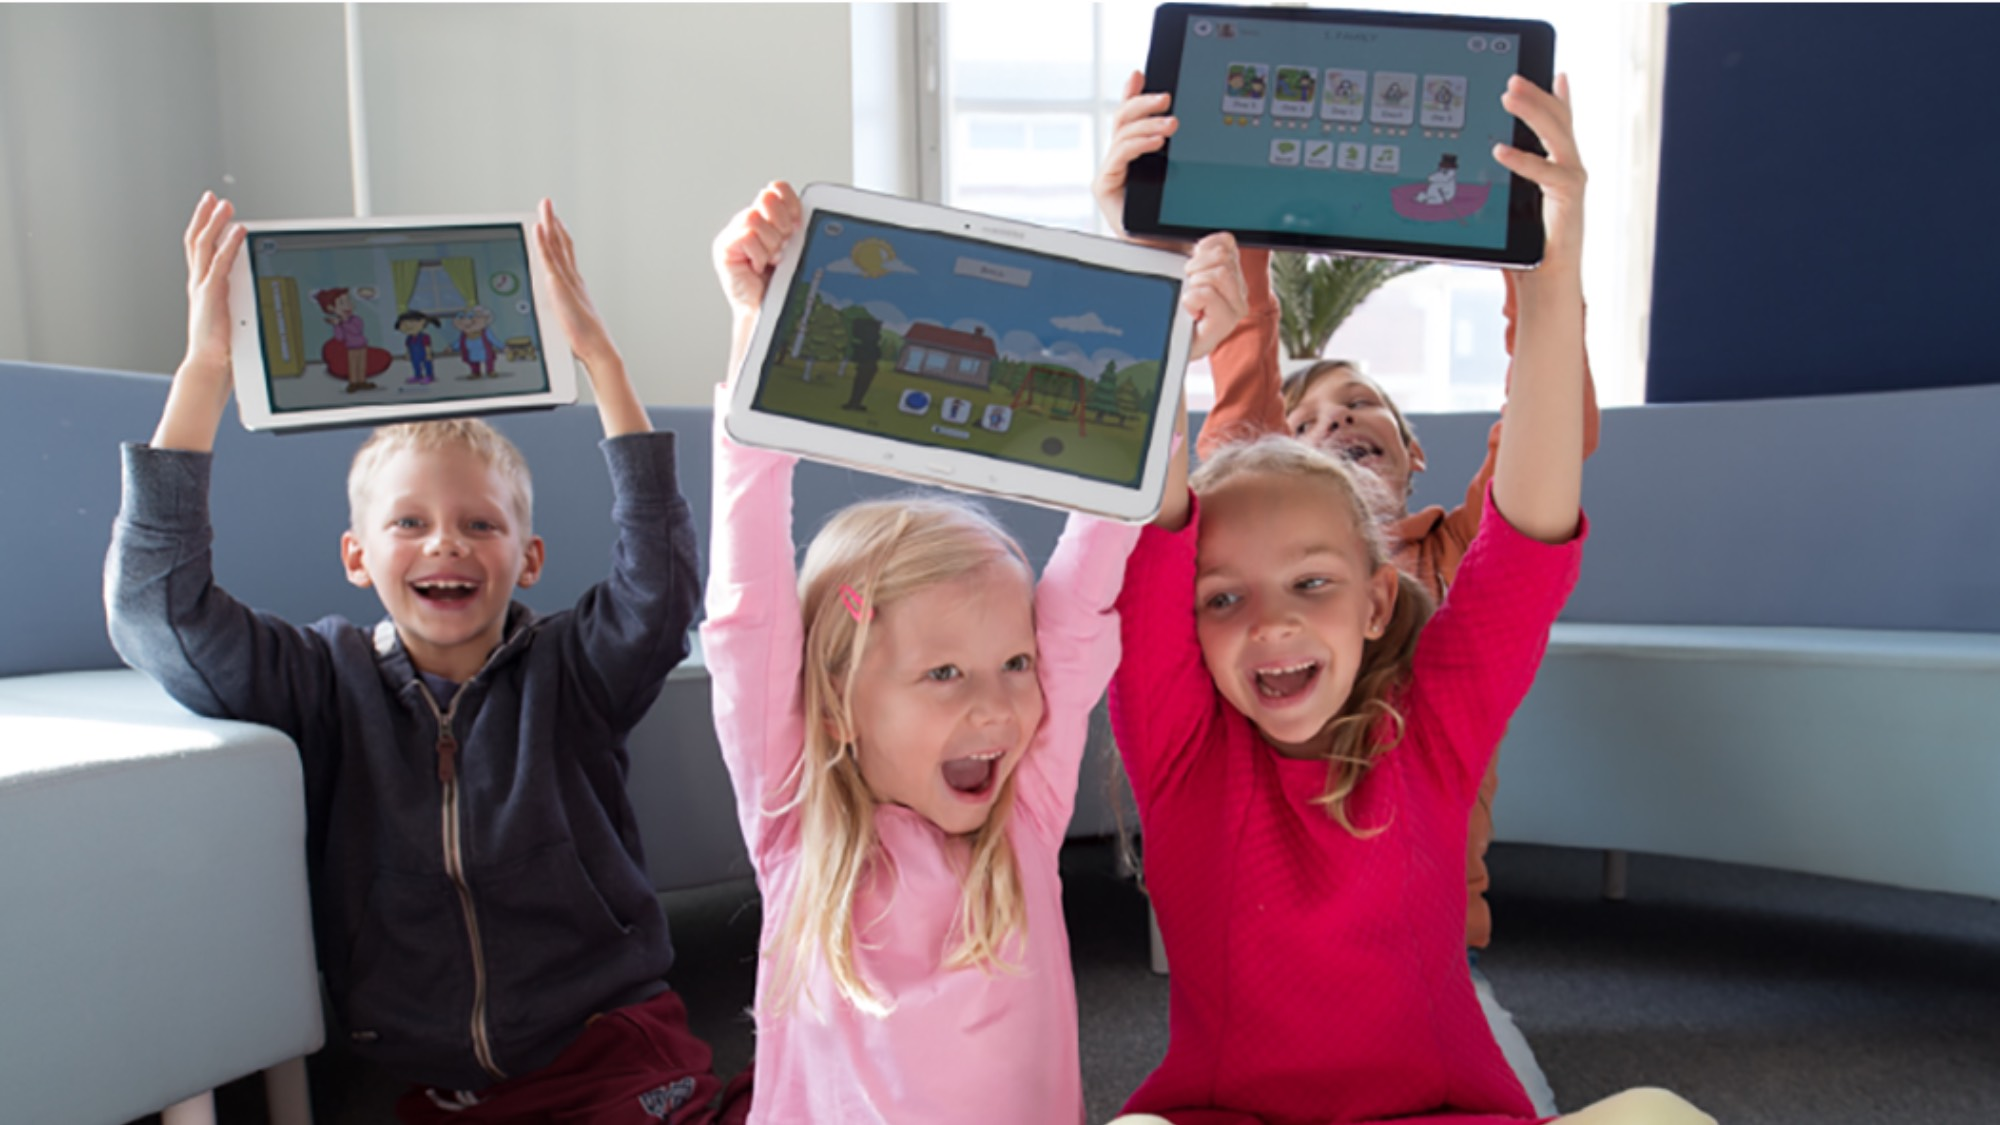 Kids holding up tablets with games on the screens